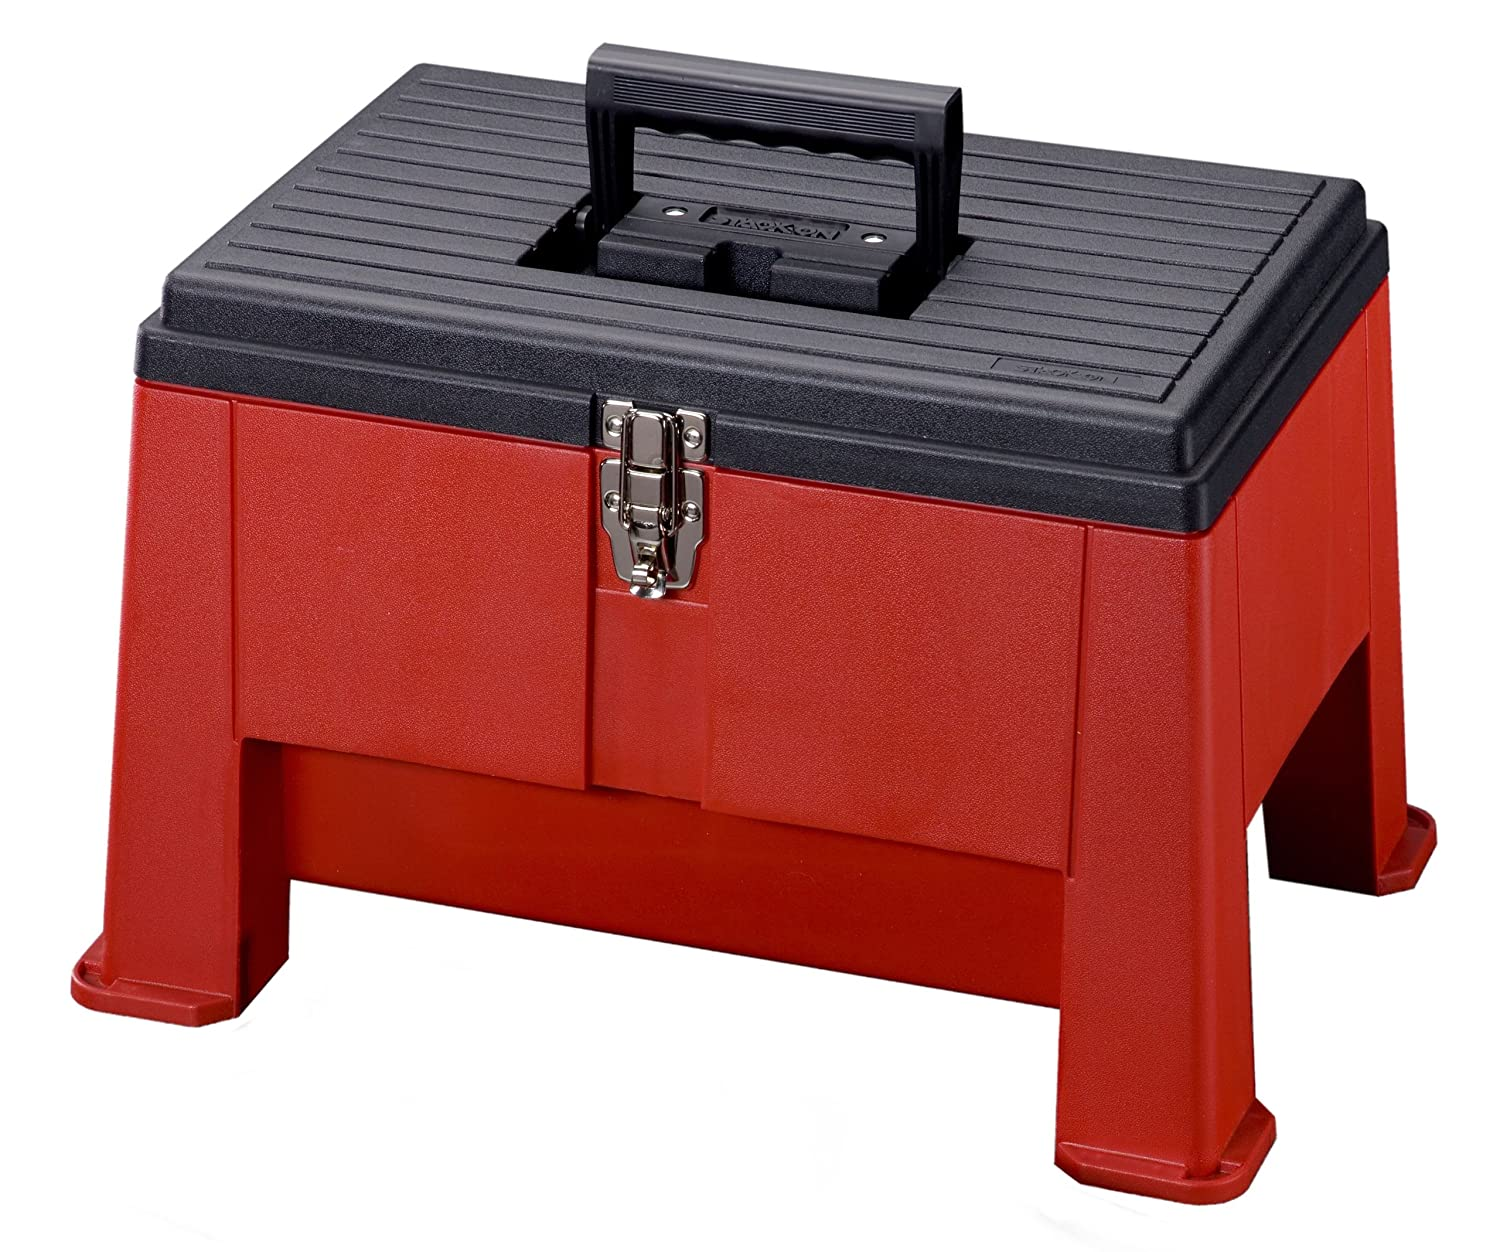 Amazon.com Stack-On SSR-20 Step u0027N Stor Step Stool Black/Red Home Improvement  sc 1 st  Amazon.com & Amazon.com: Stack-On SSR-20 Step u0027N Stor Step Stool Black/Red ... islam-shia.org